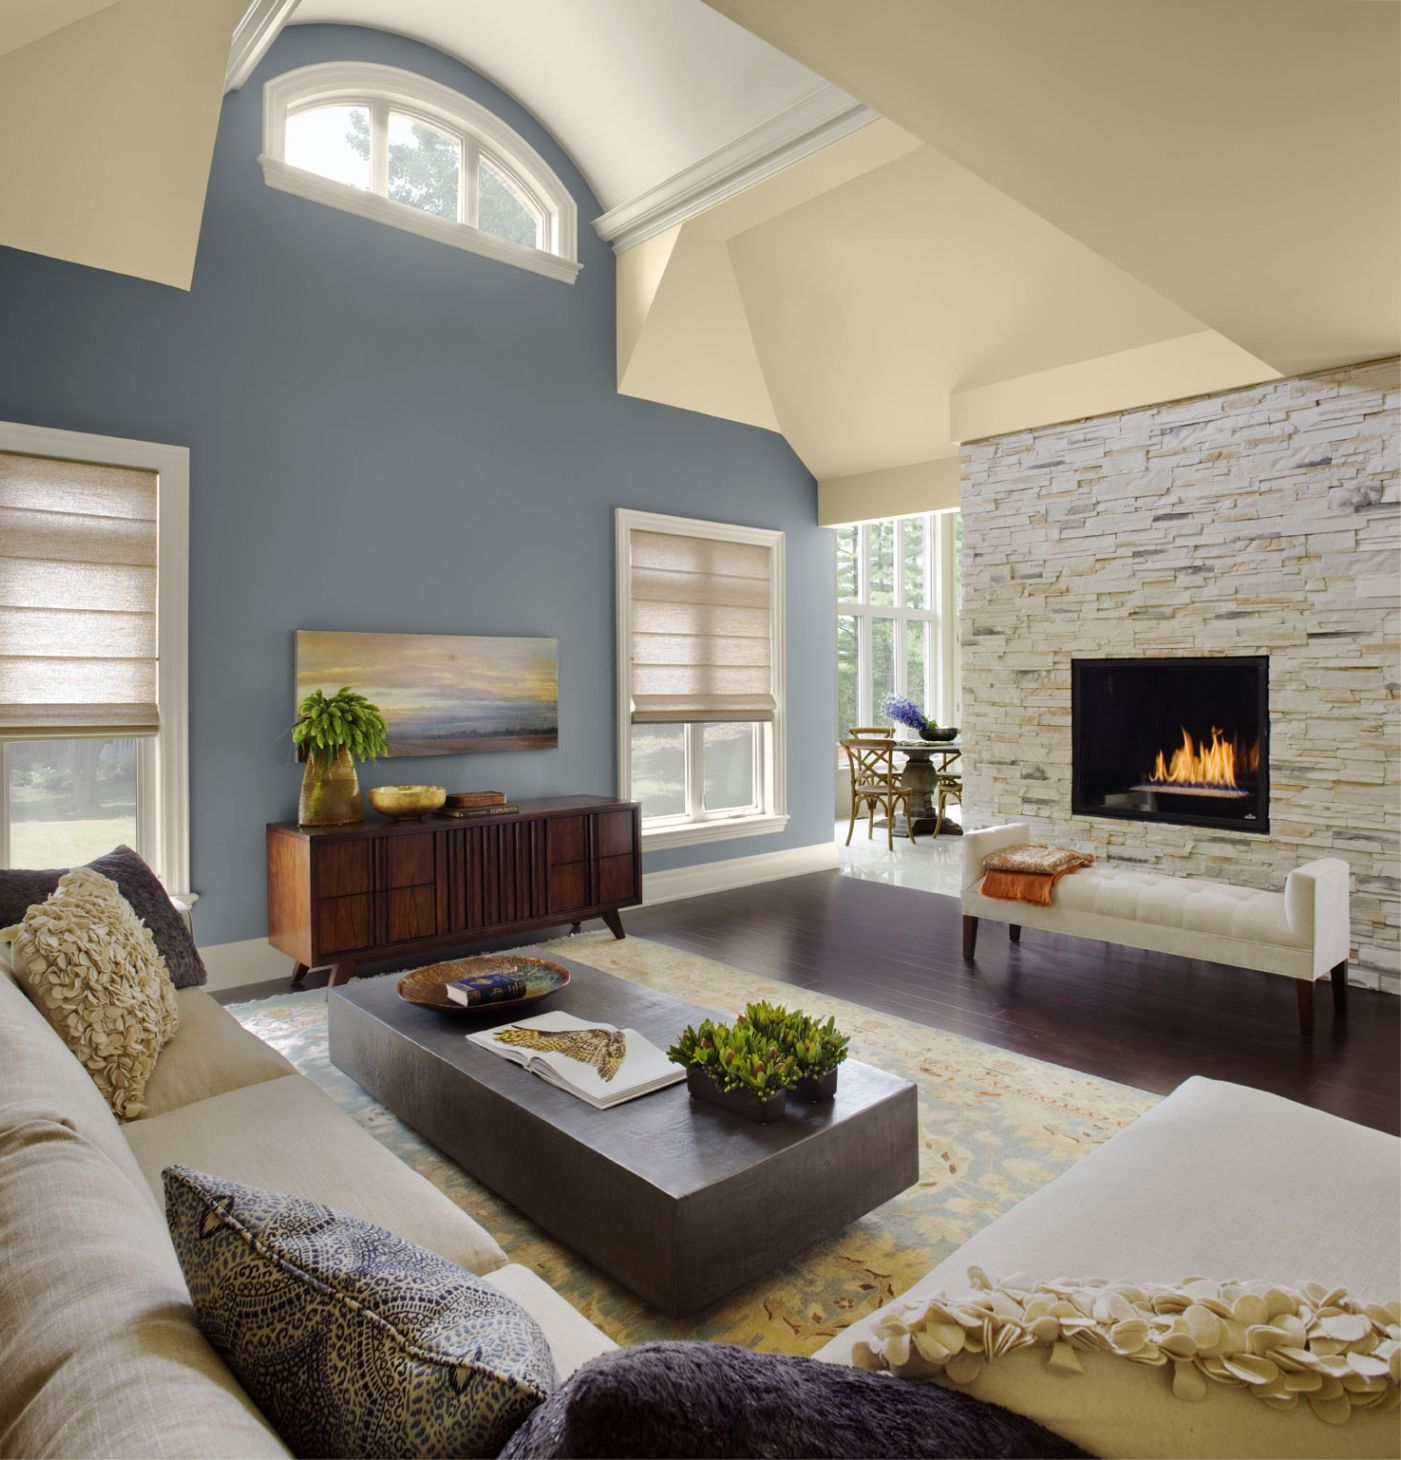 vaulted ceiling decorating ideas living room - Stunning view of Vaulted Ceiling Decorating Ideas for Homes